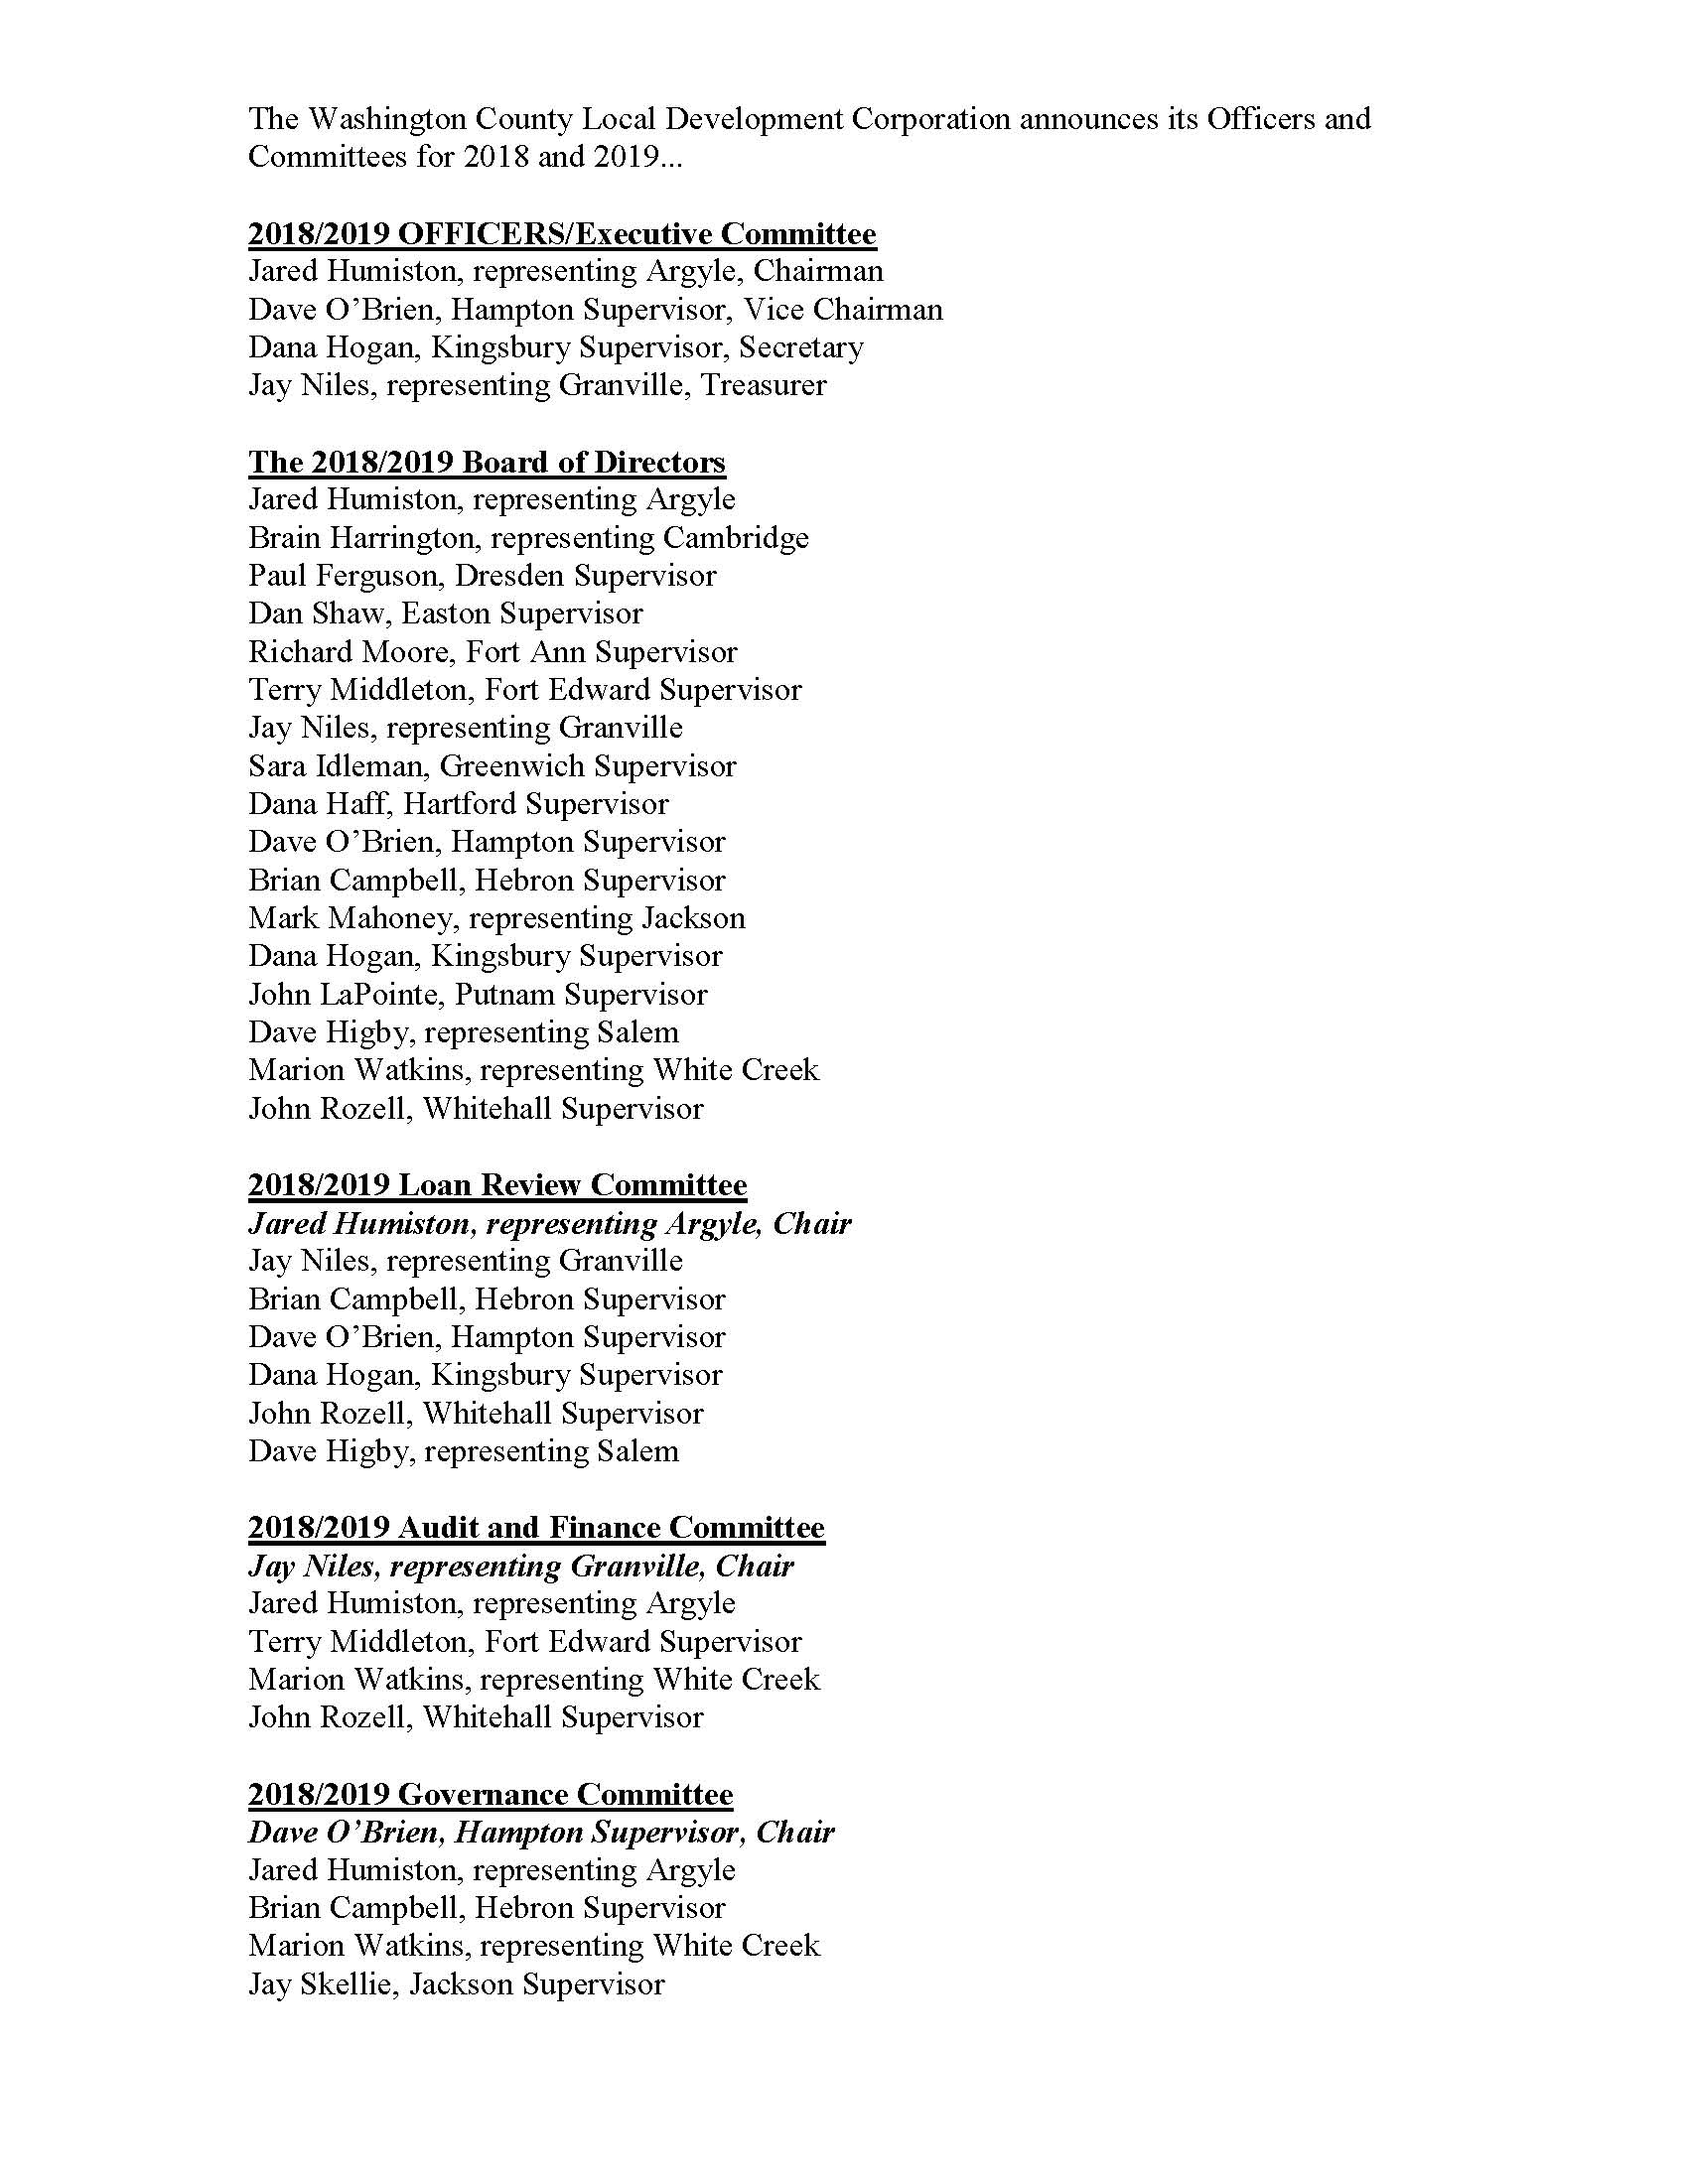 2018-2019 LDC Officers and Committees